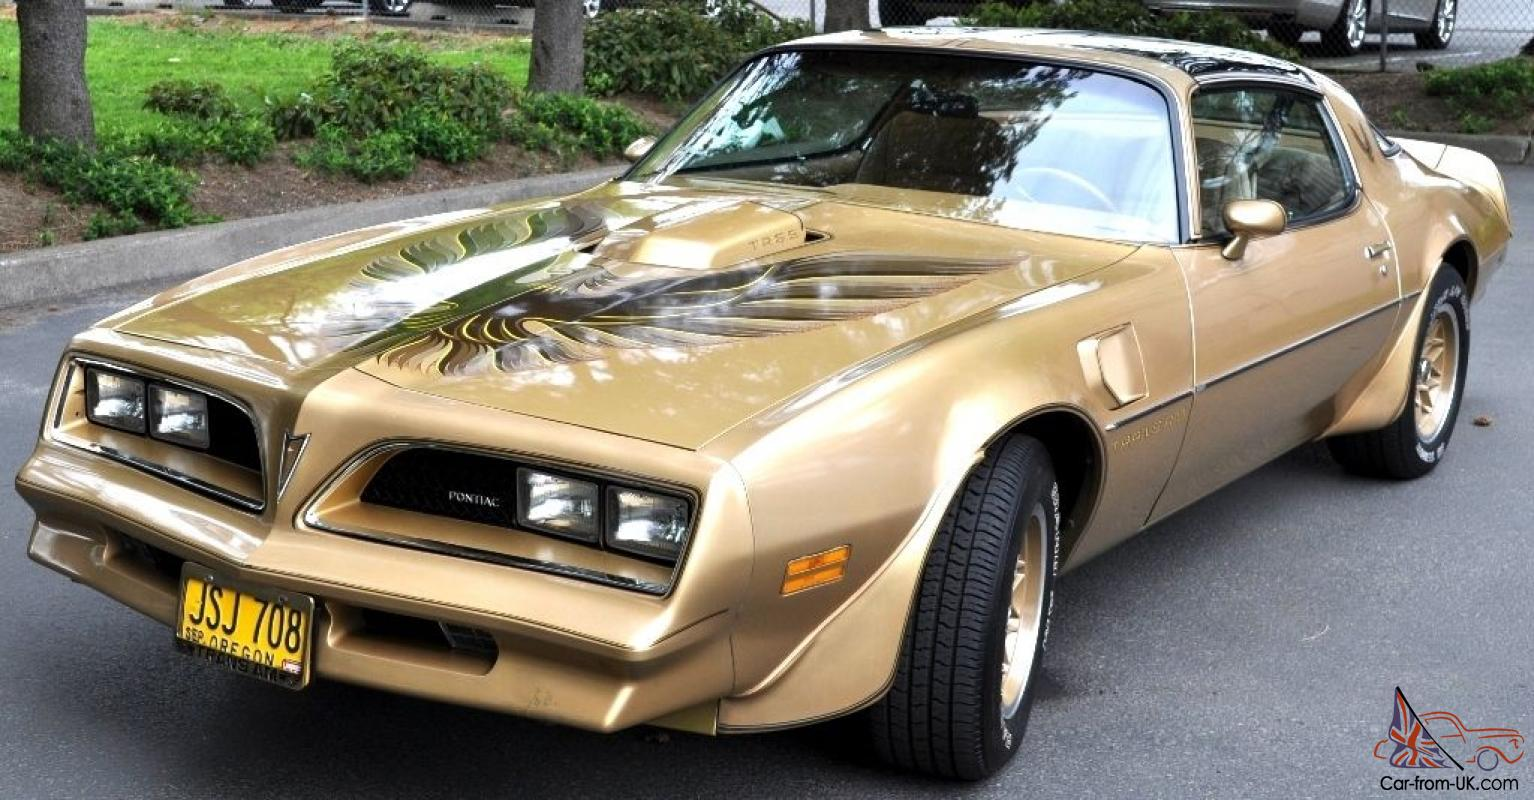 1978 pontiac trans am y88 gold special edition 4 speed manual 53 000 miles. Black Bedroom Furniture Sets. Home Design Ideas